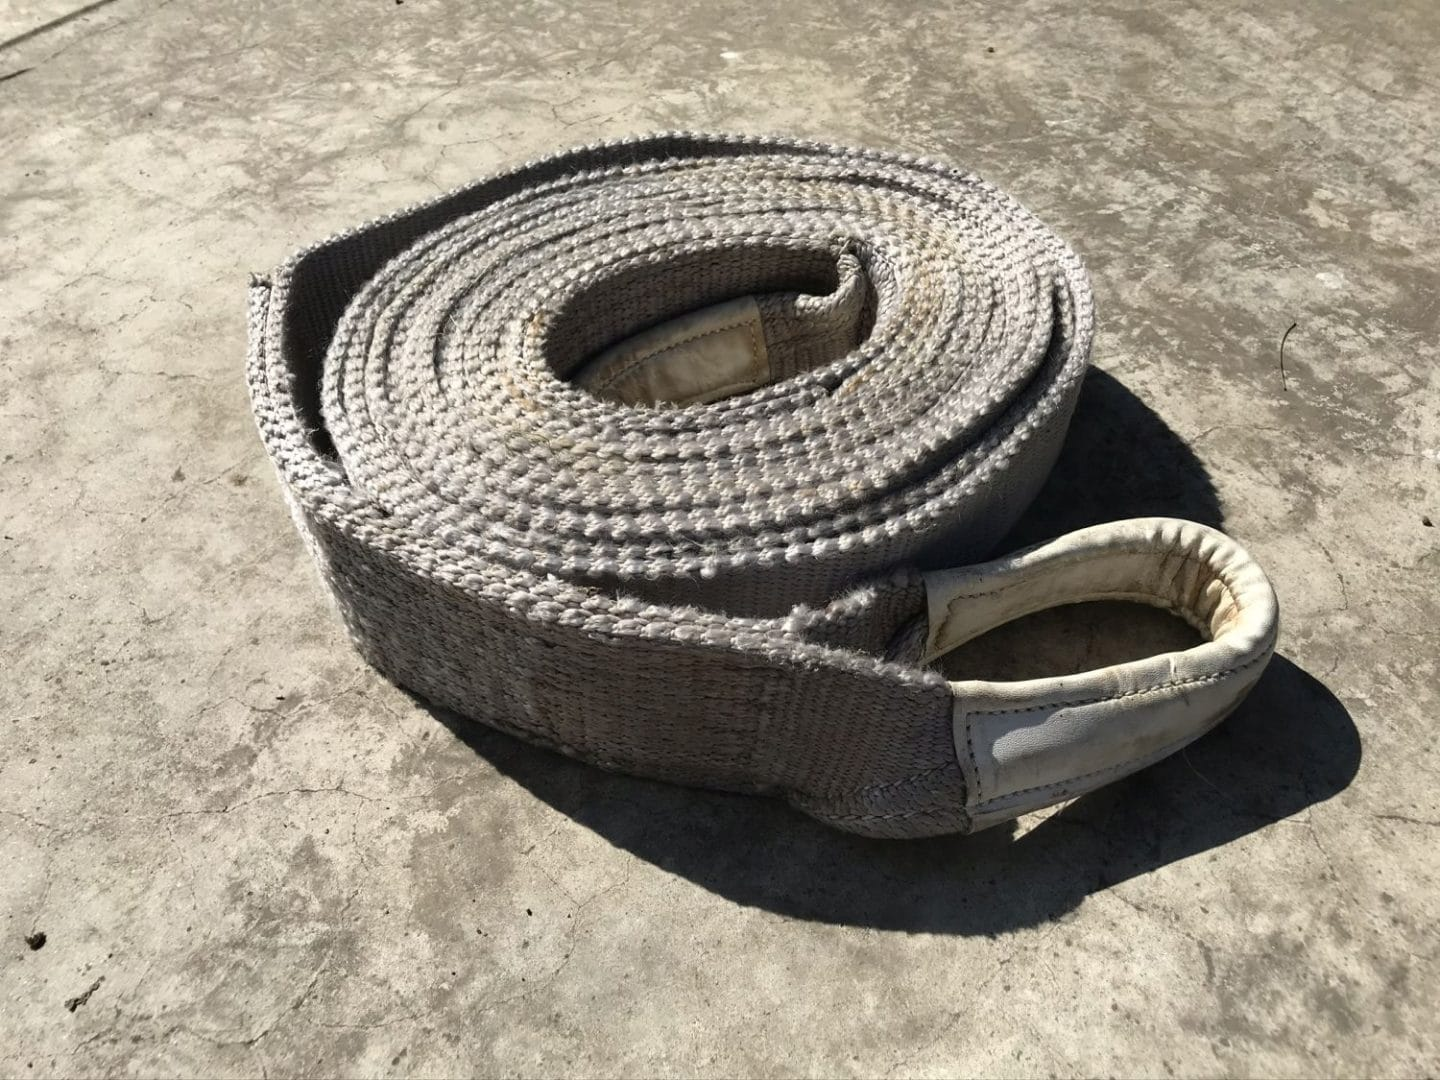 Tow Rope Photo From Milky Way Photography Safety and Security Tips, Copyright 2020 Stanley Harper